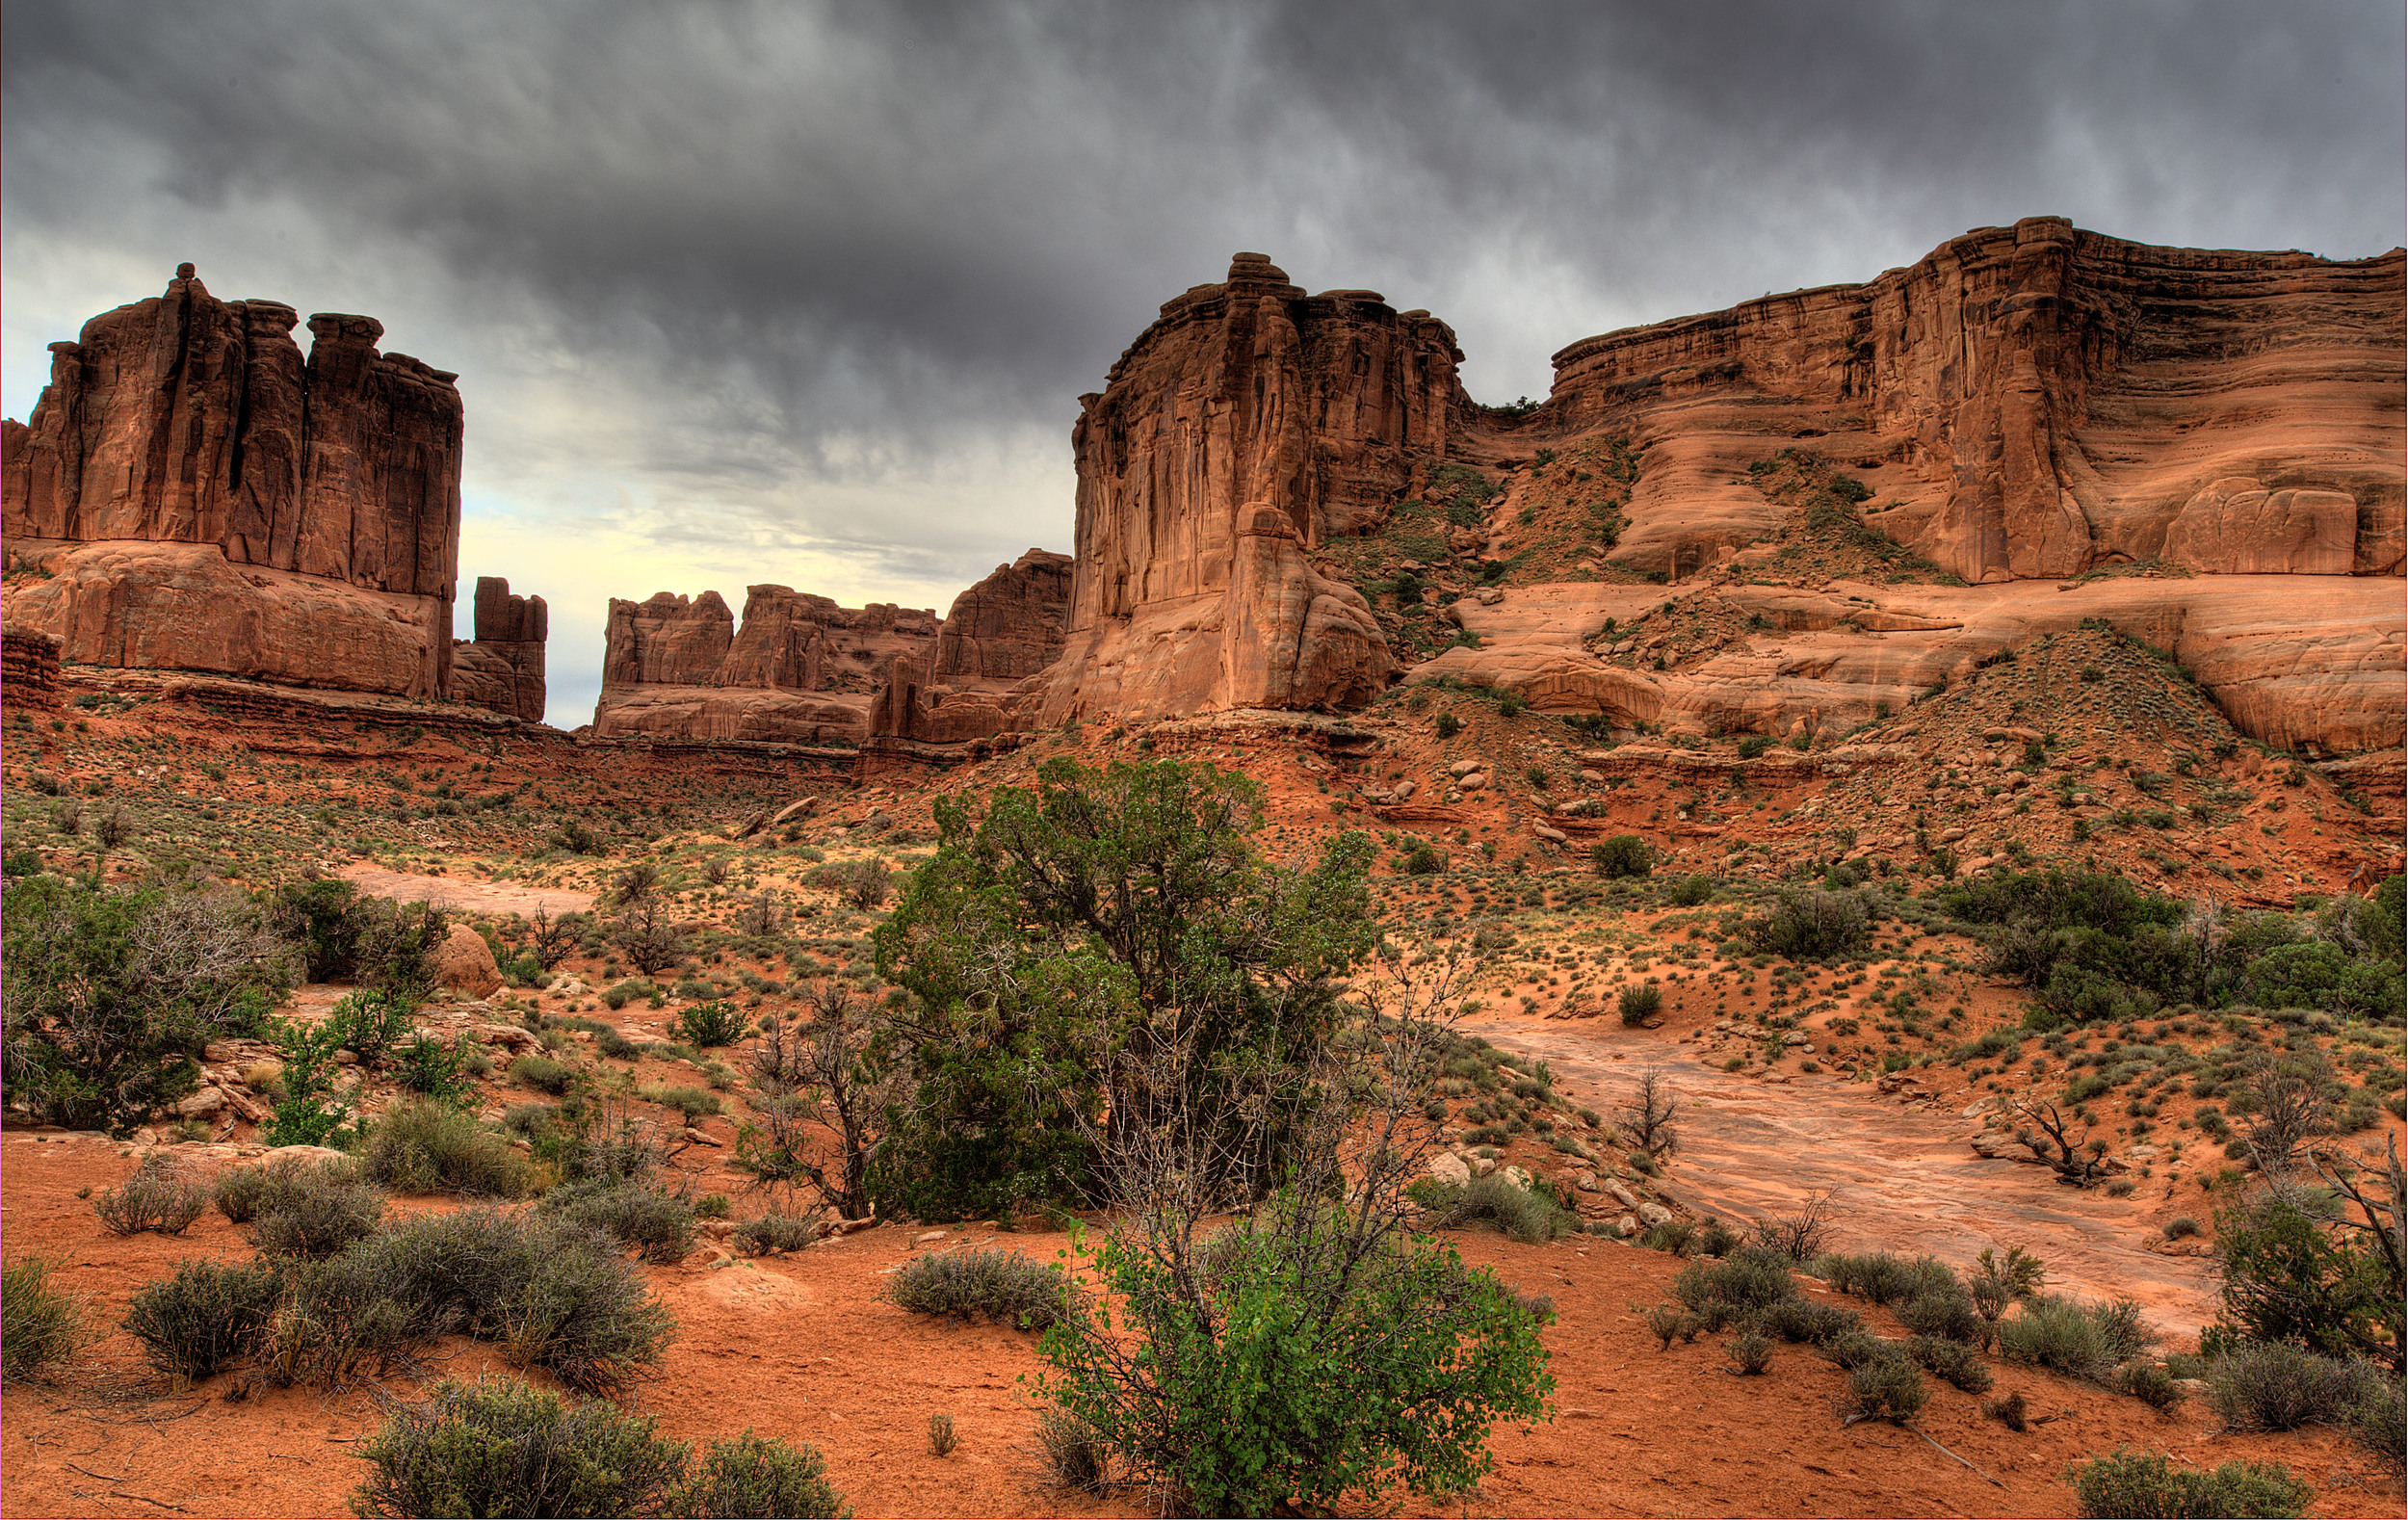 090610_0044_39_40_41_42_43 Wall Street overlook at Arches.jpg